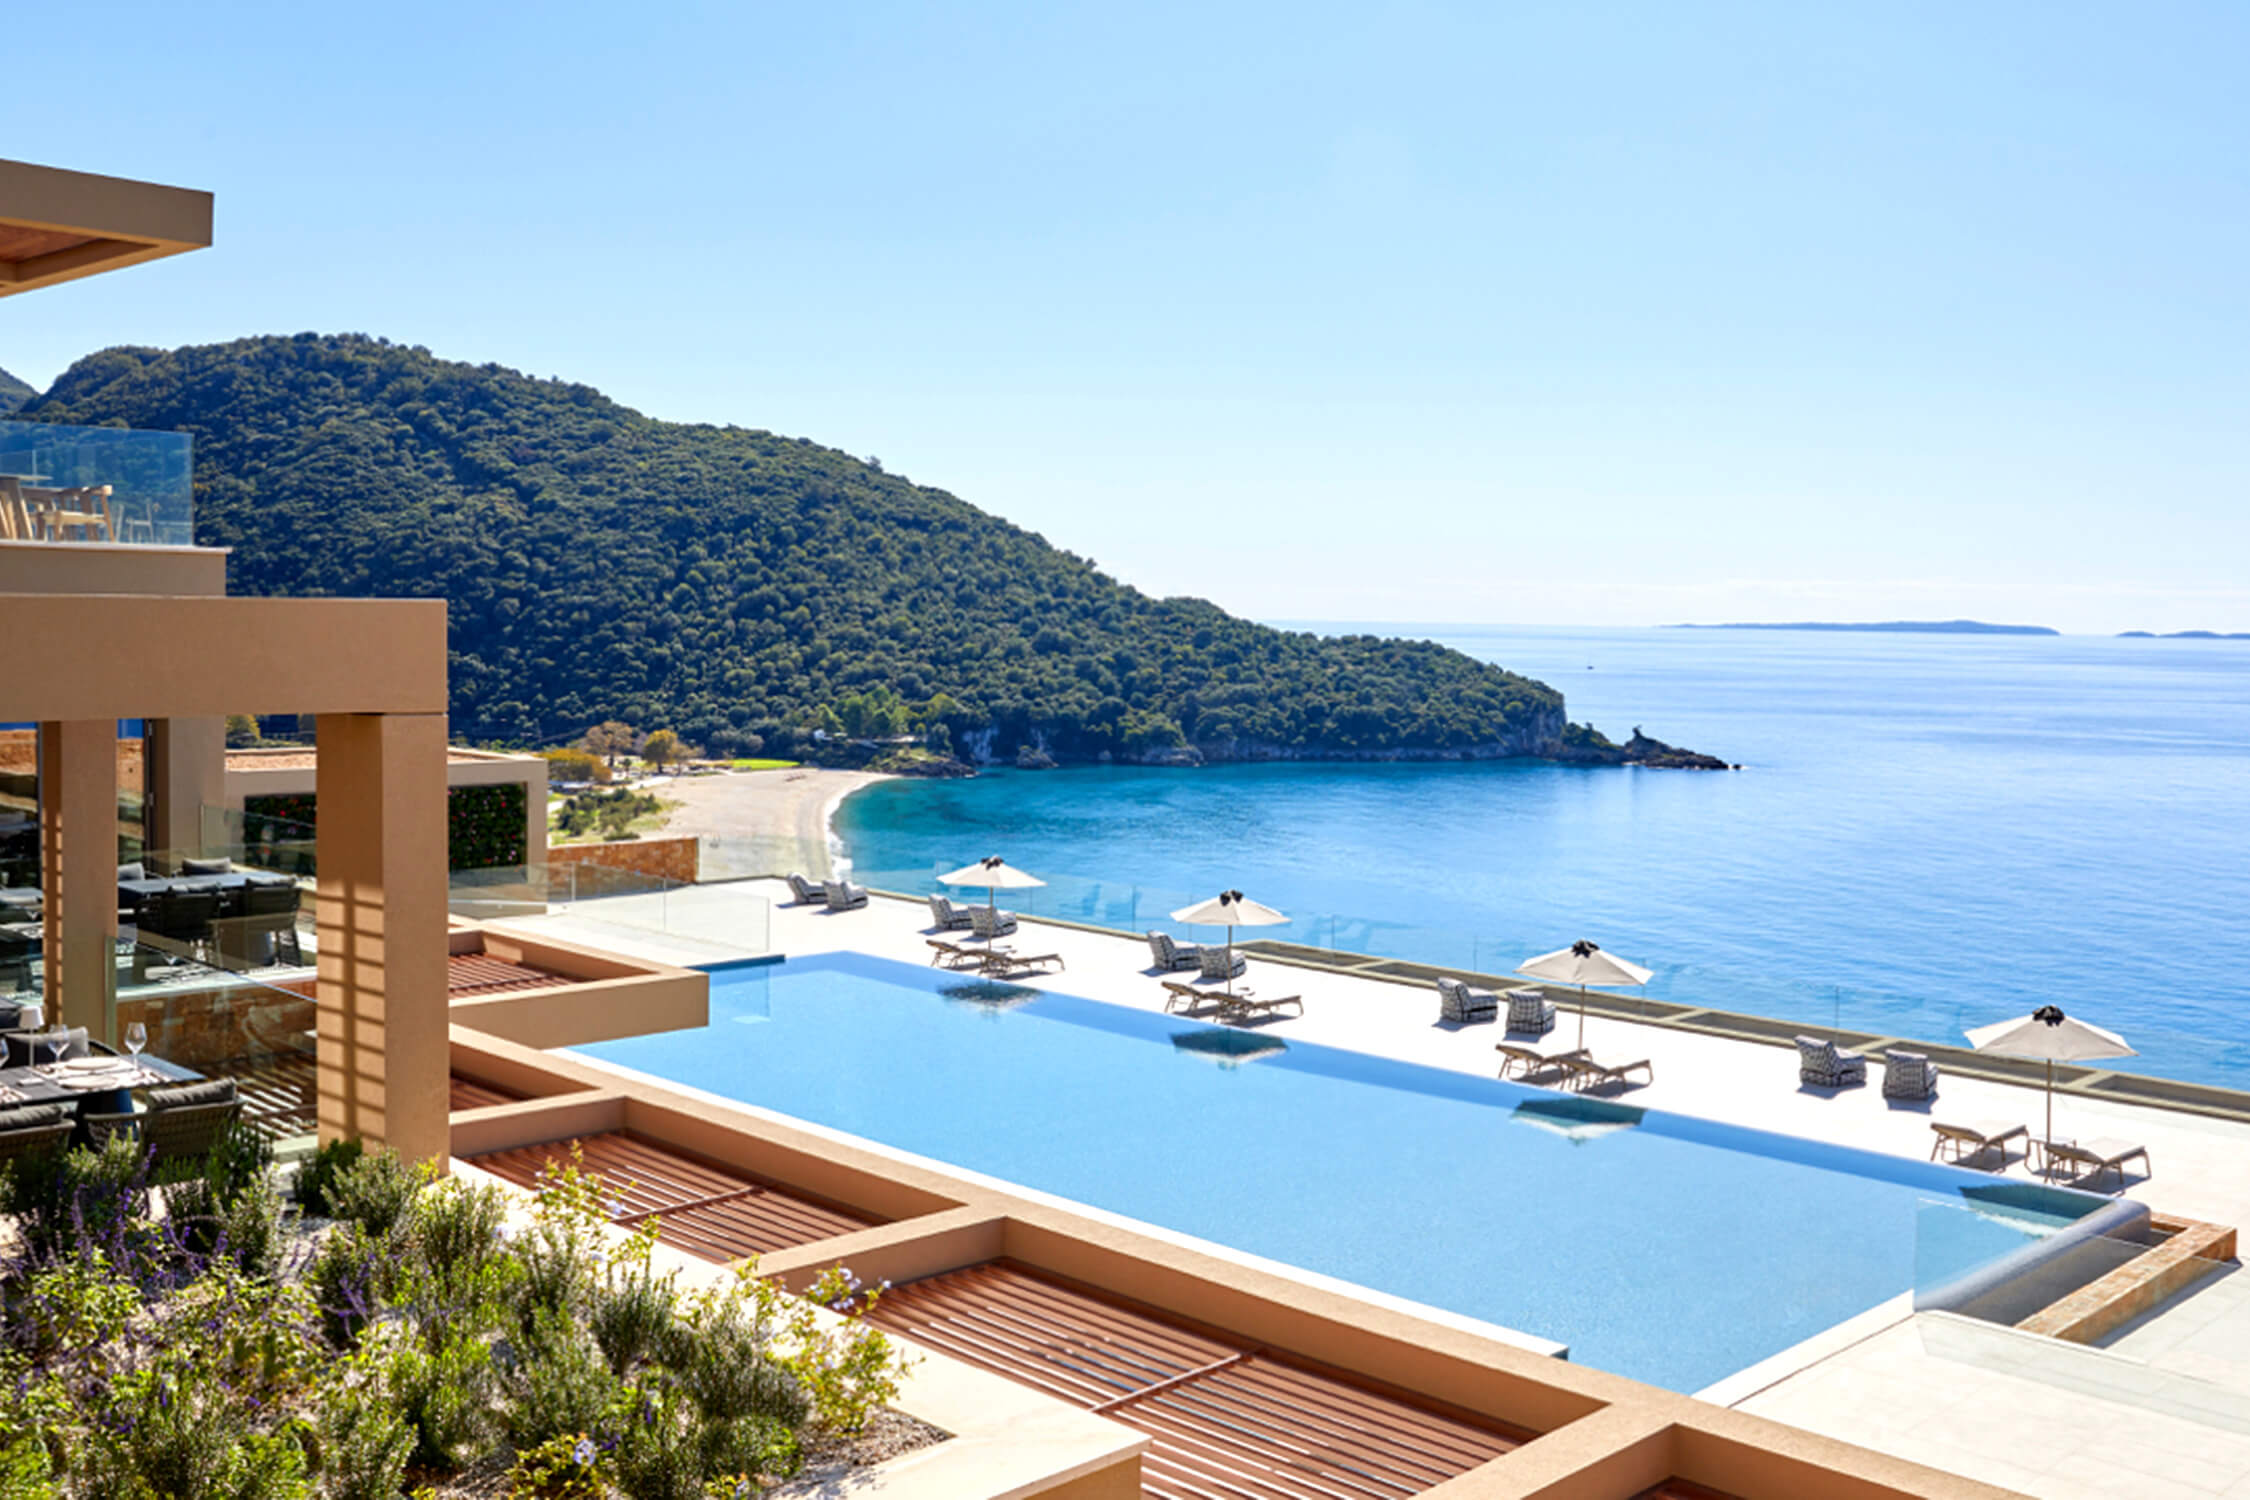 Win a holiday to Greece from The Times